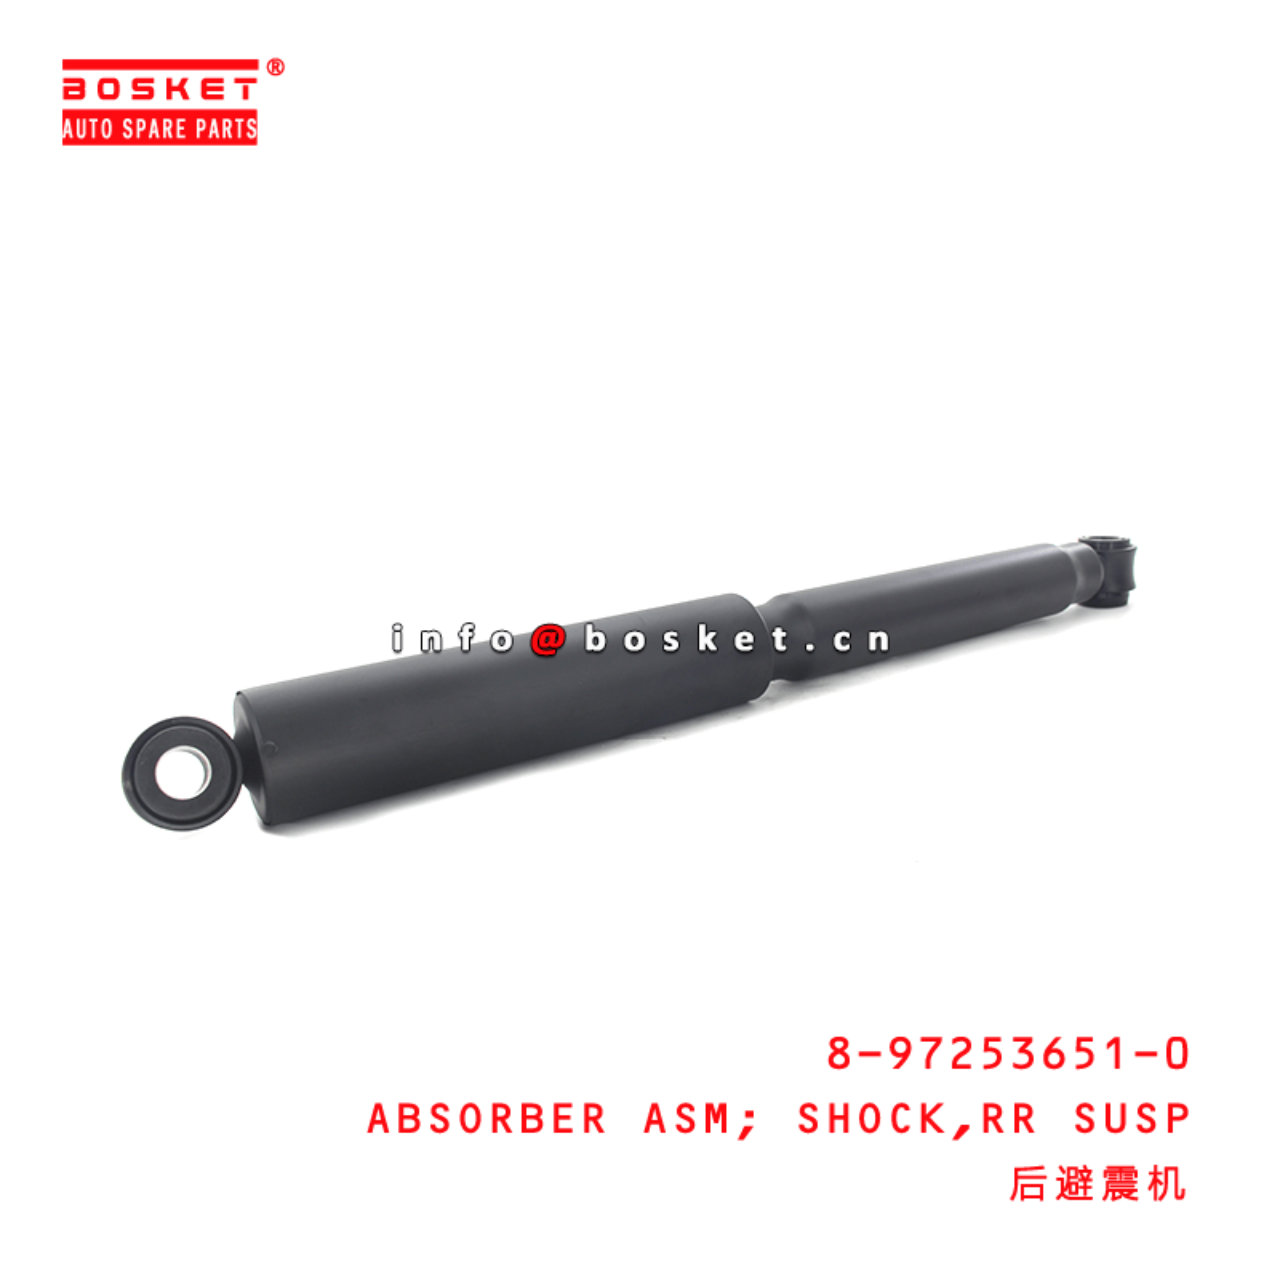 8-97253651-0 Rear Suspension Shock Absorber Assembly 8972536510 Suitable for ISUZU NKR57 600P